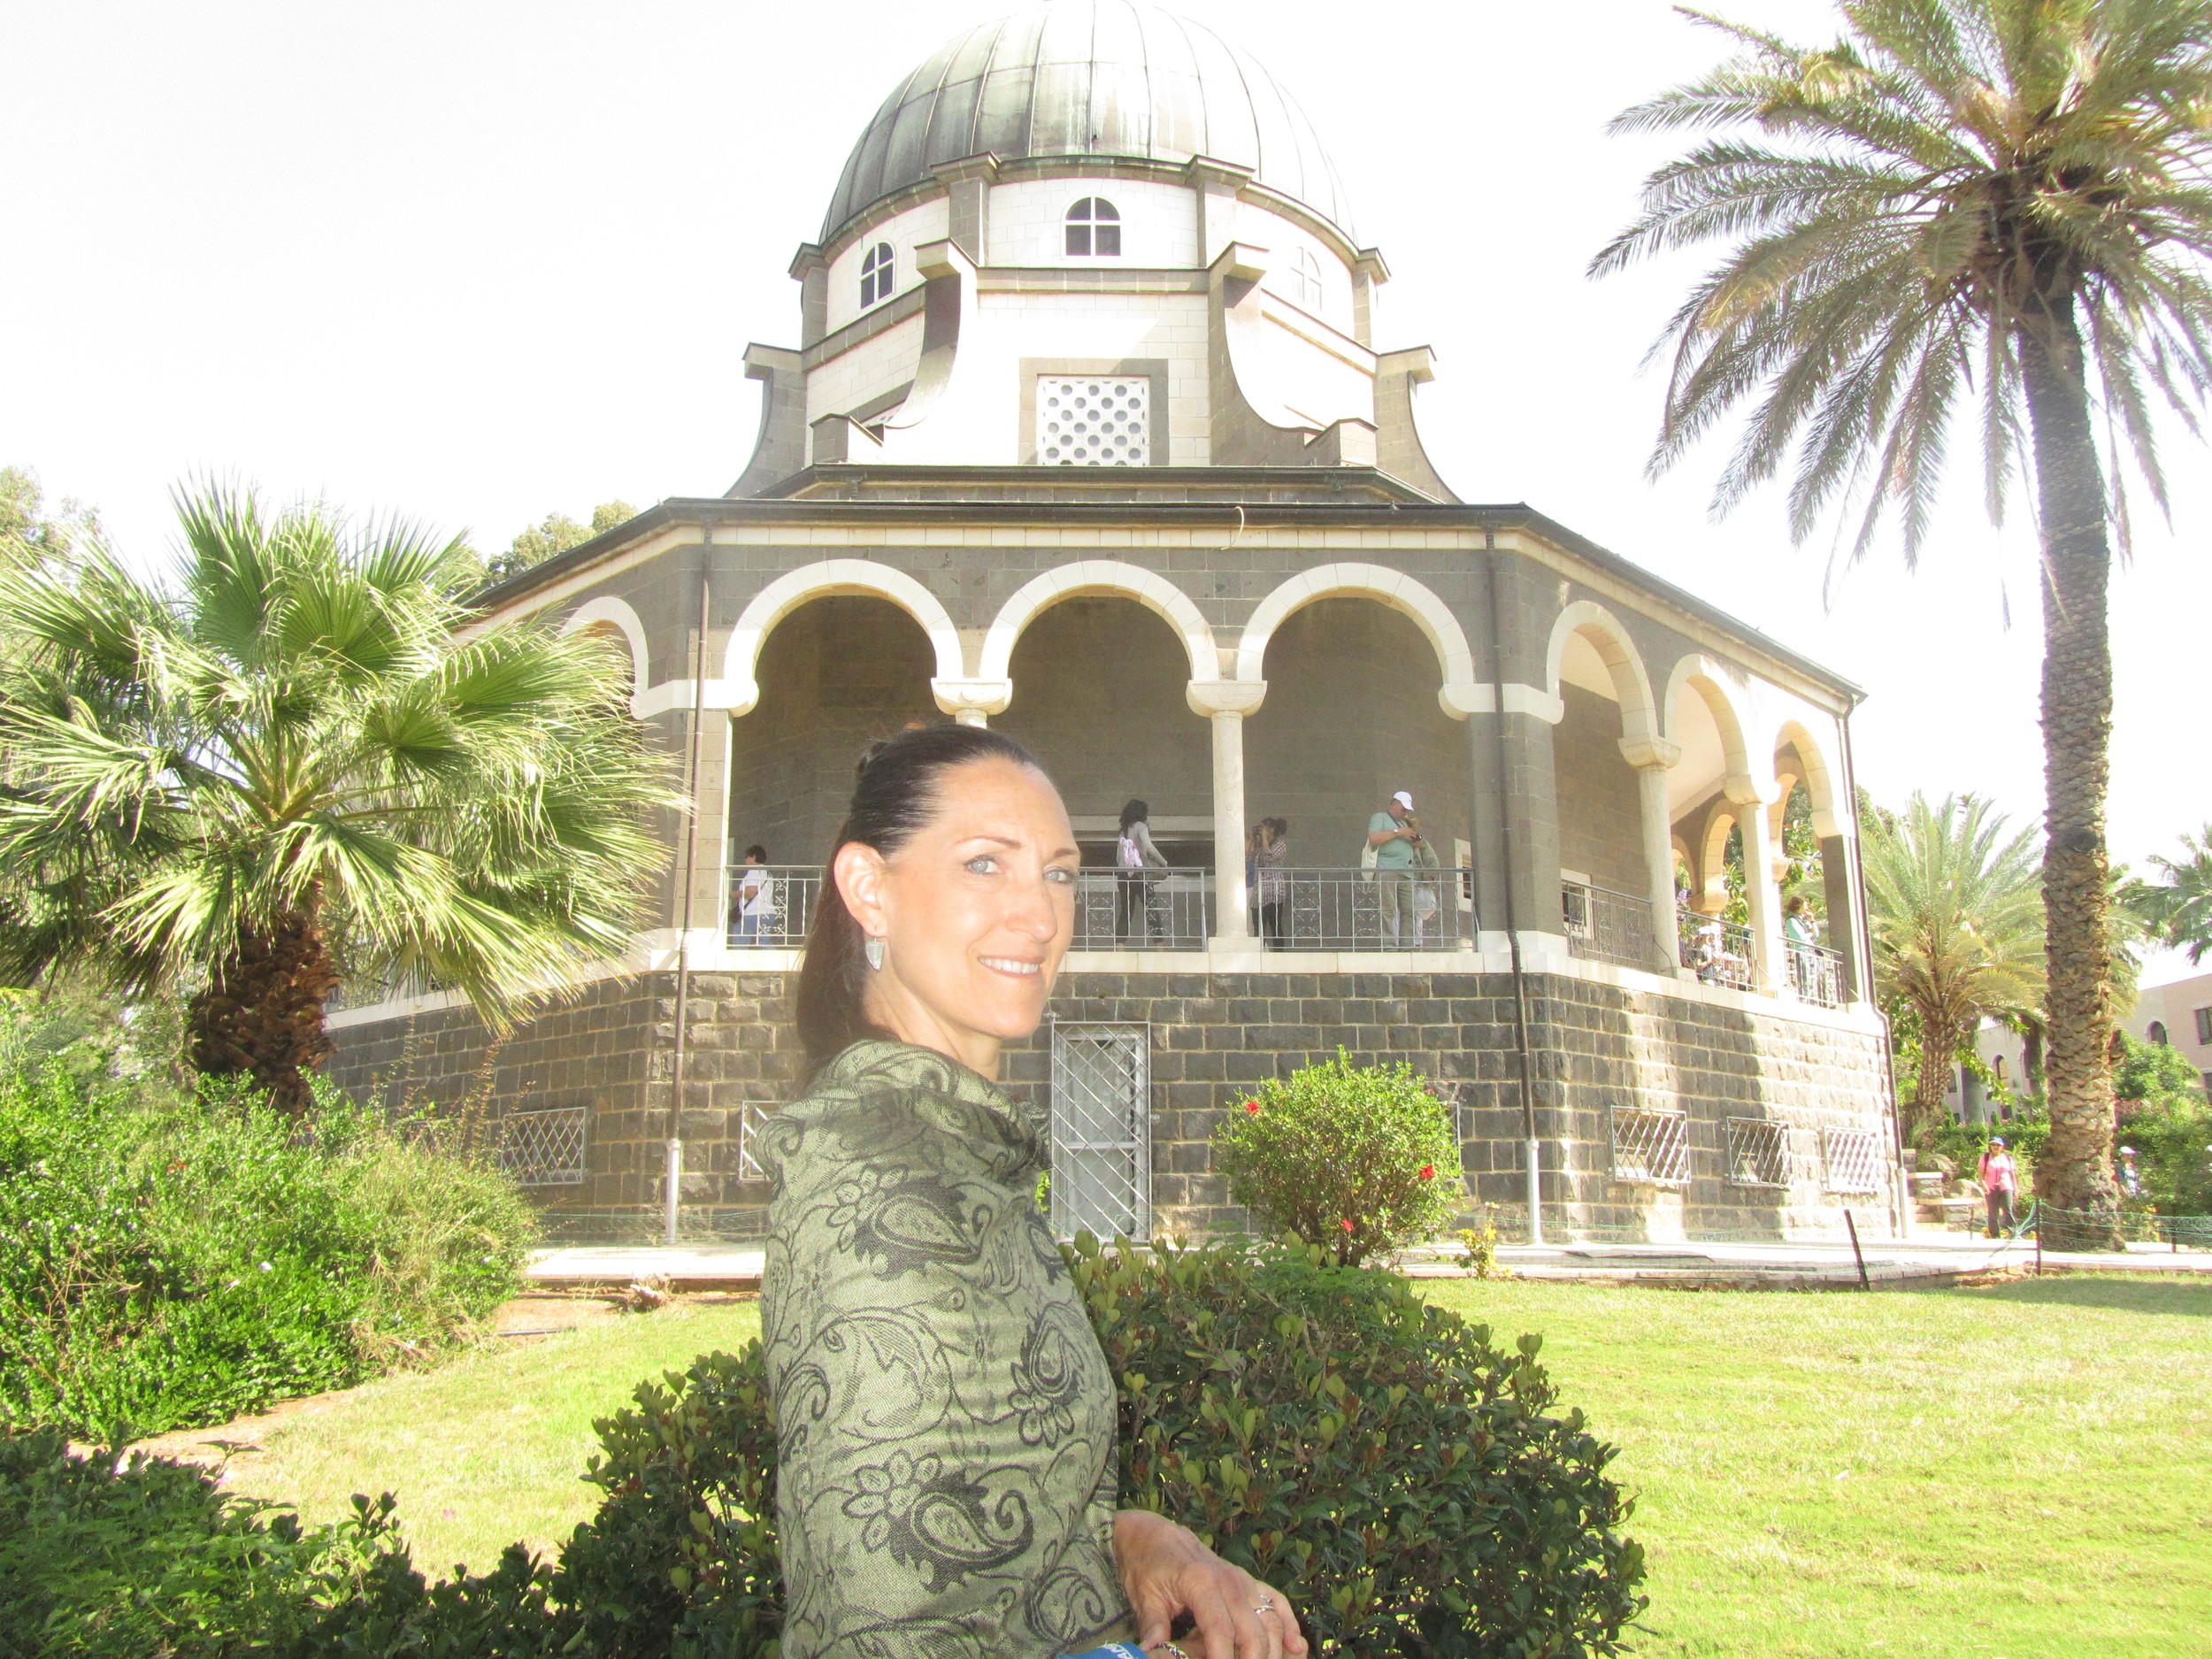 My Beautiful Bride at the Church of the Beatitudes